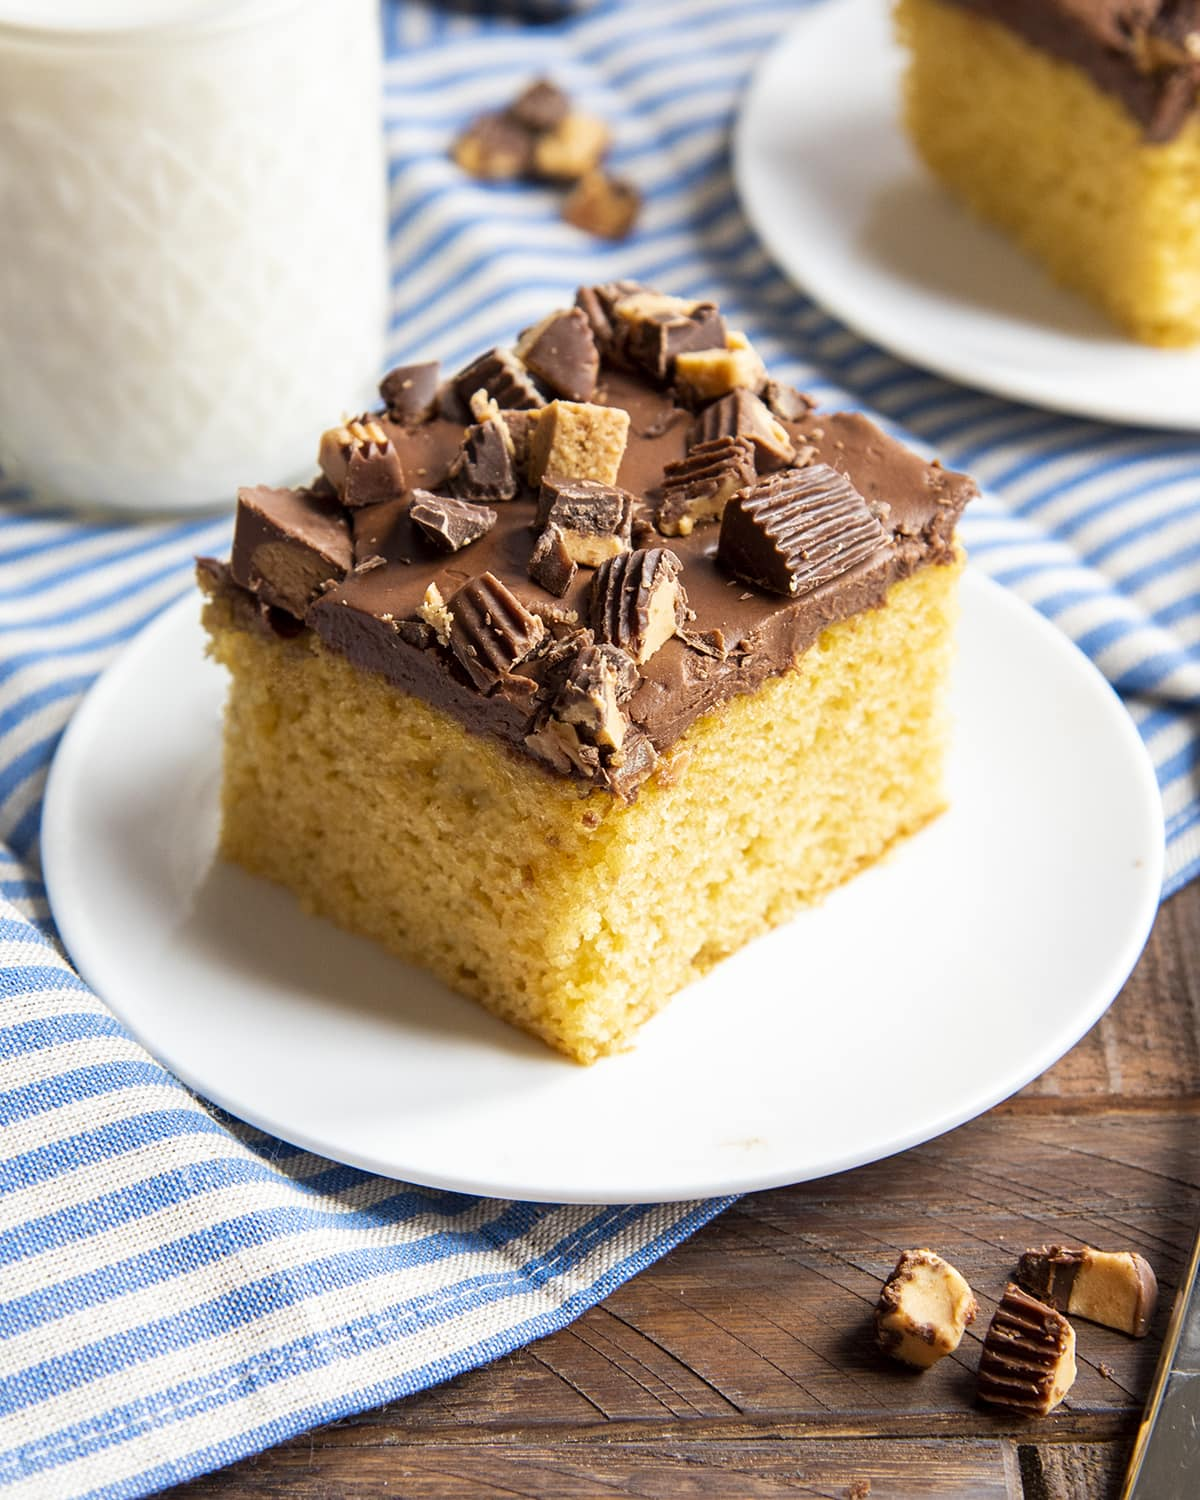 A piece of peanut butter cake made with a cake mix topped with chocolate frosting and peanut butter cups.